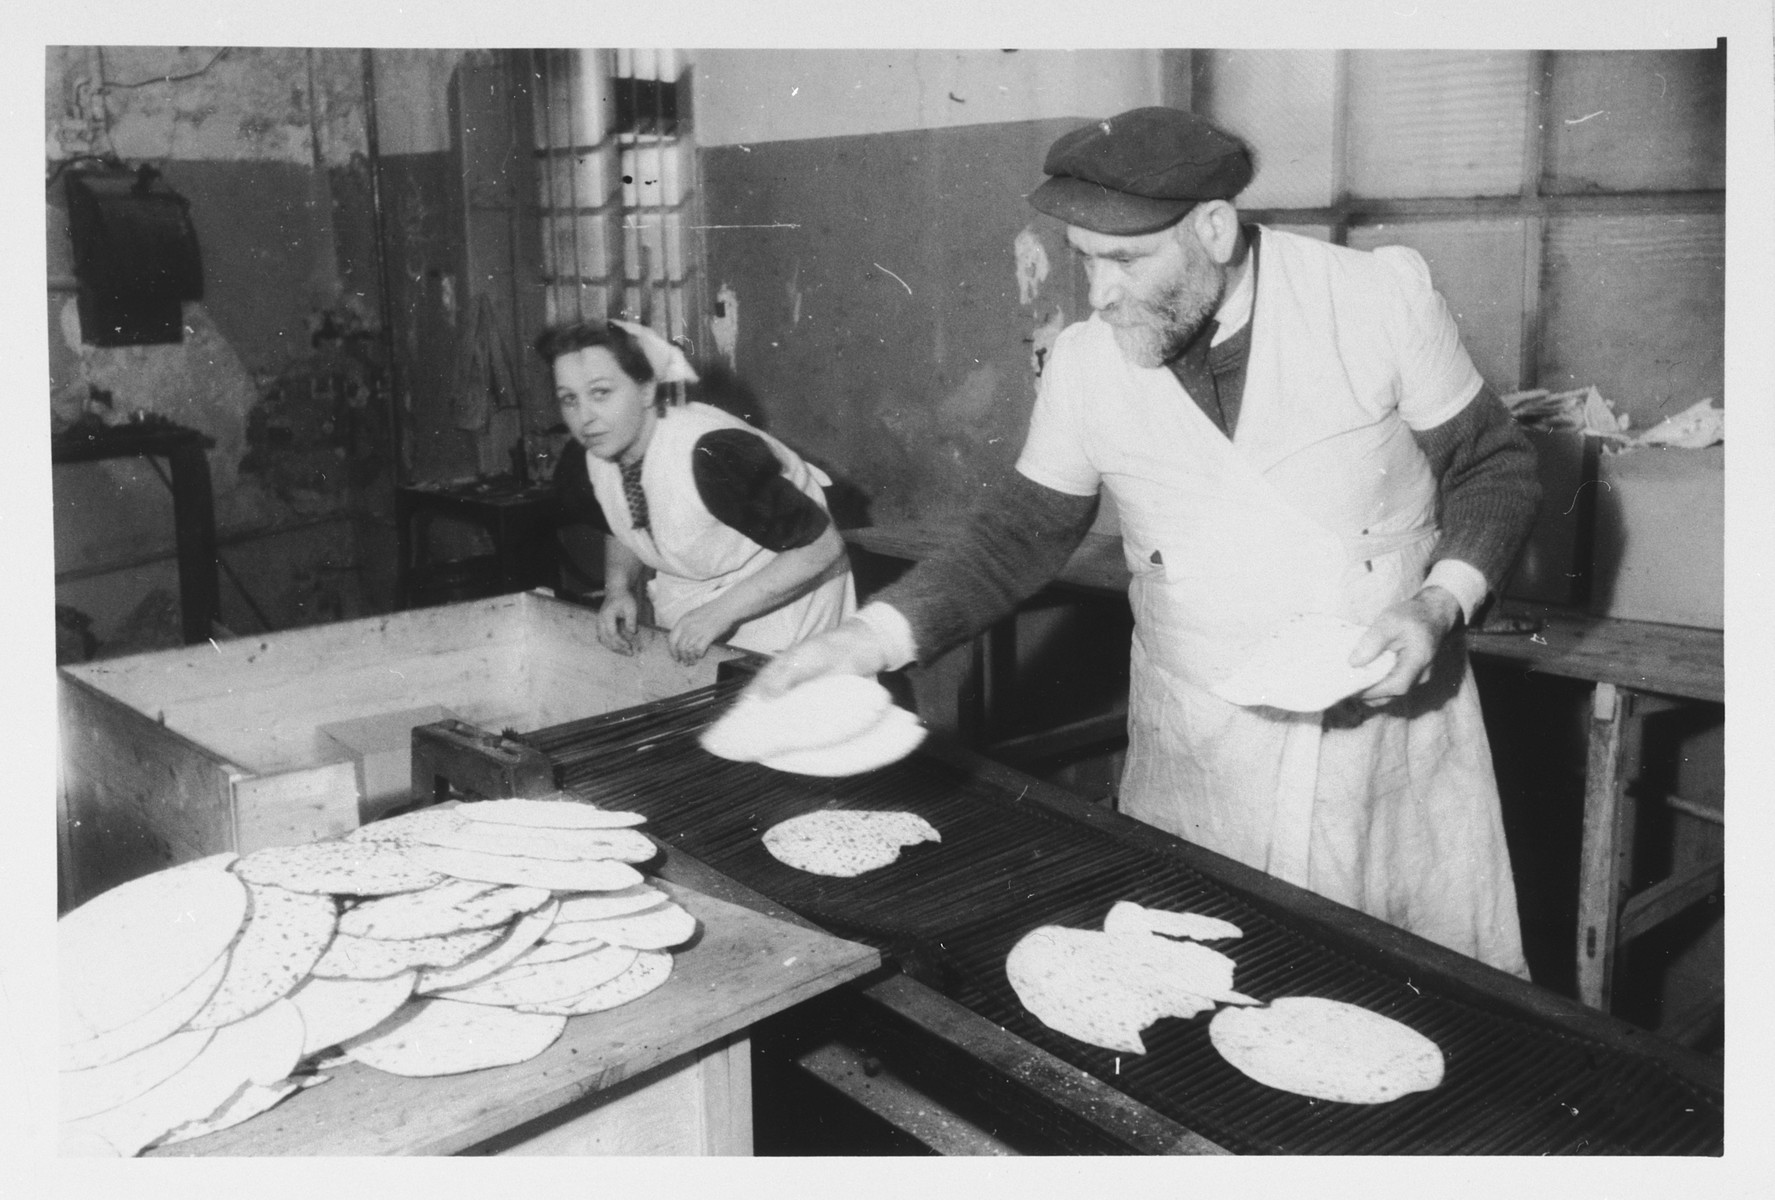 Two bakers prepare Passover matzah in the Zeilsheim displaced persons' camp.